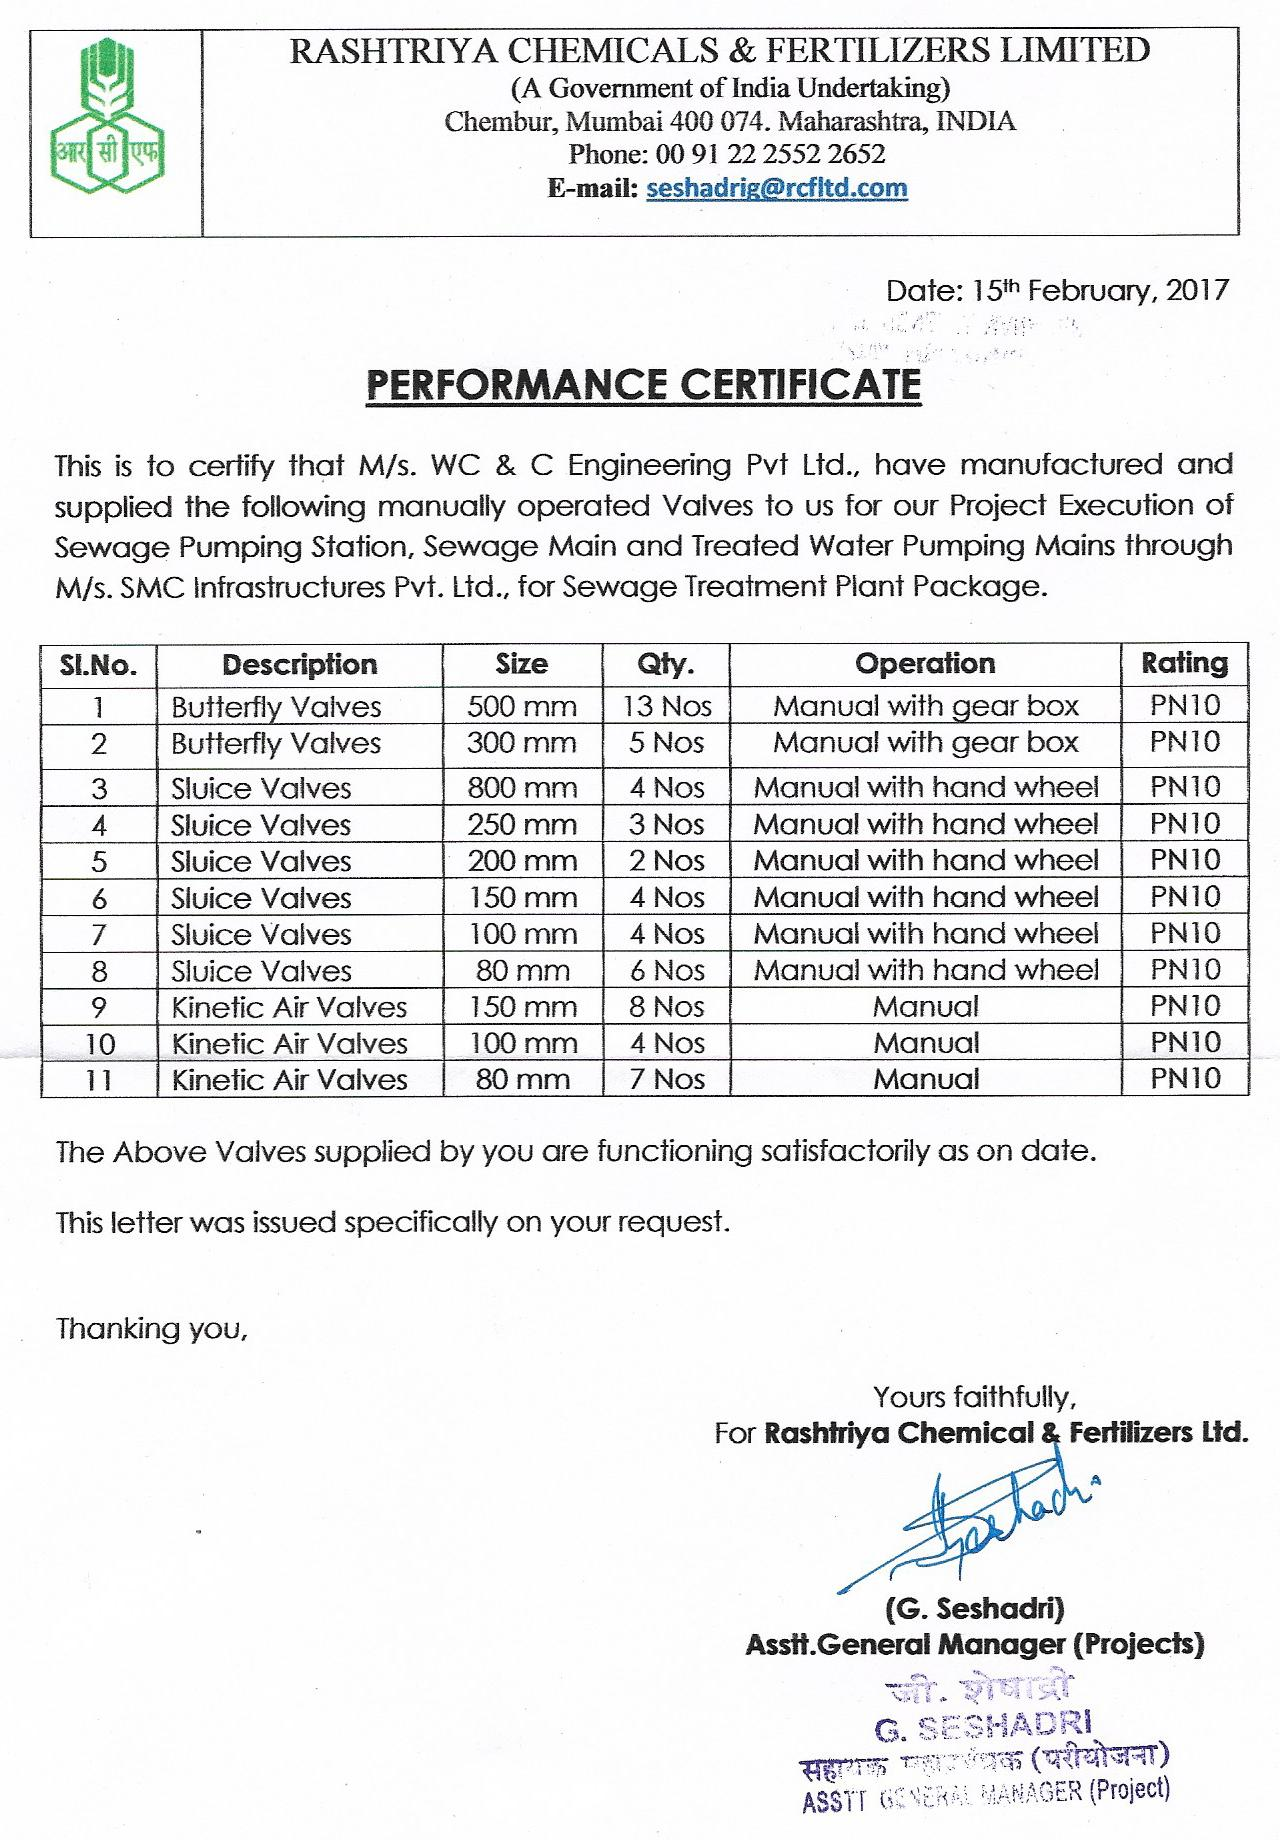 RCF Performance Certificate